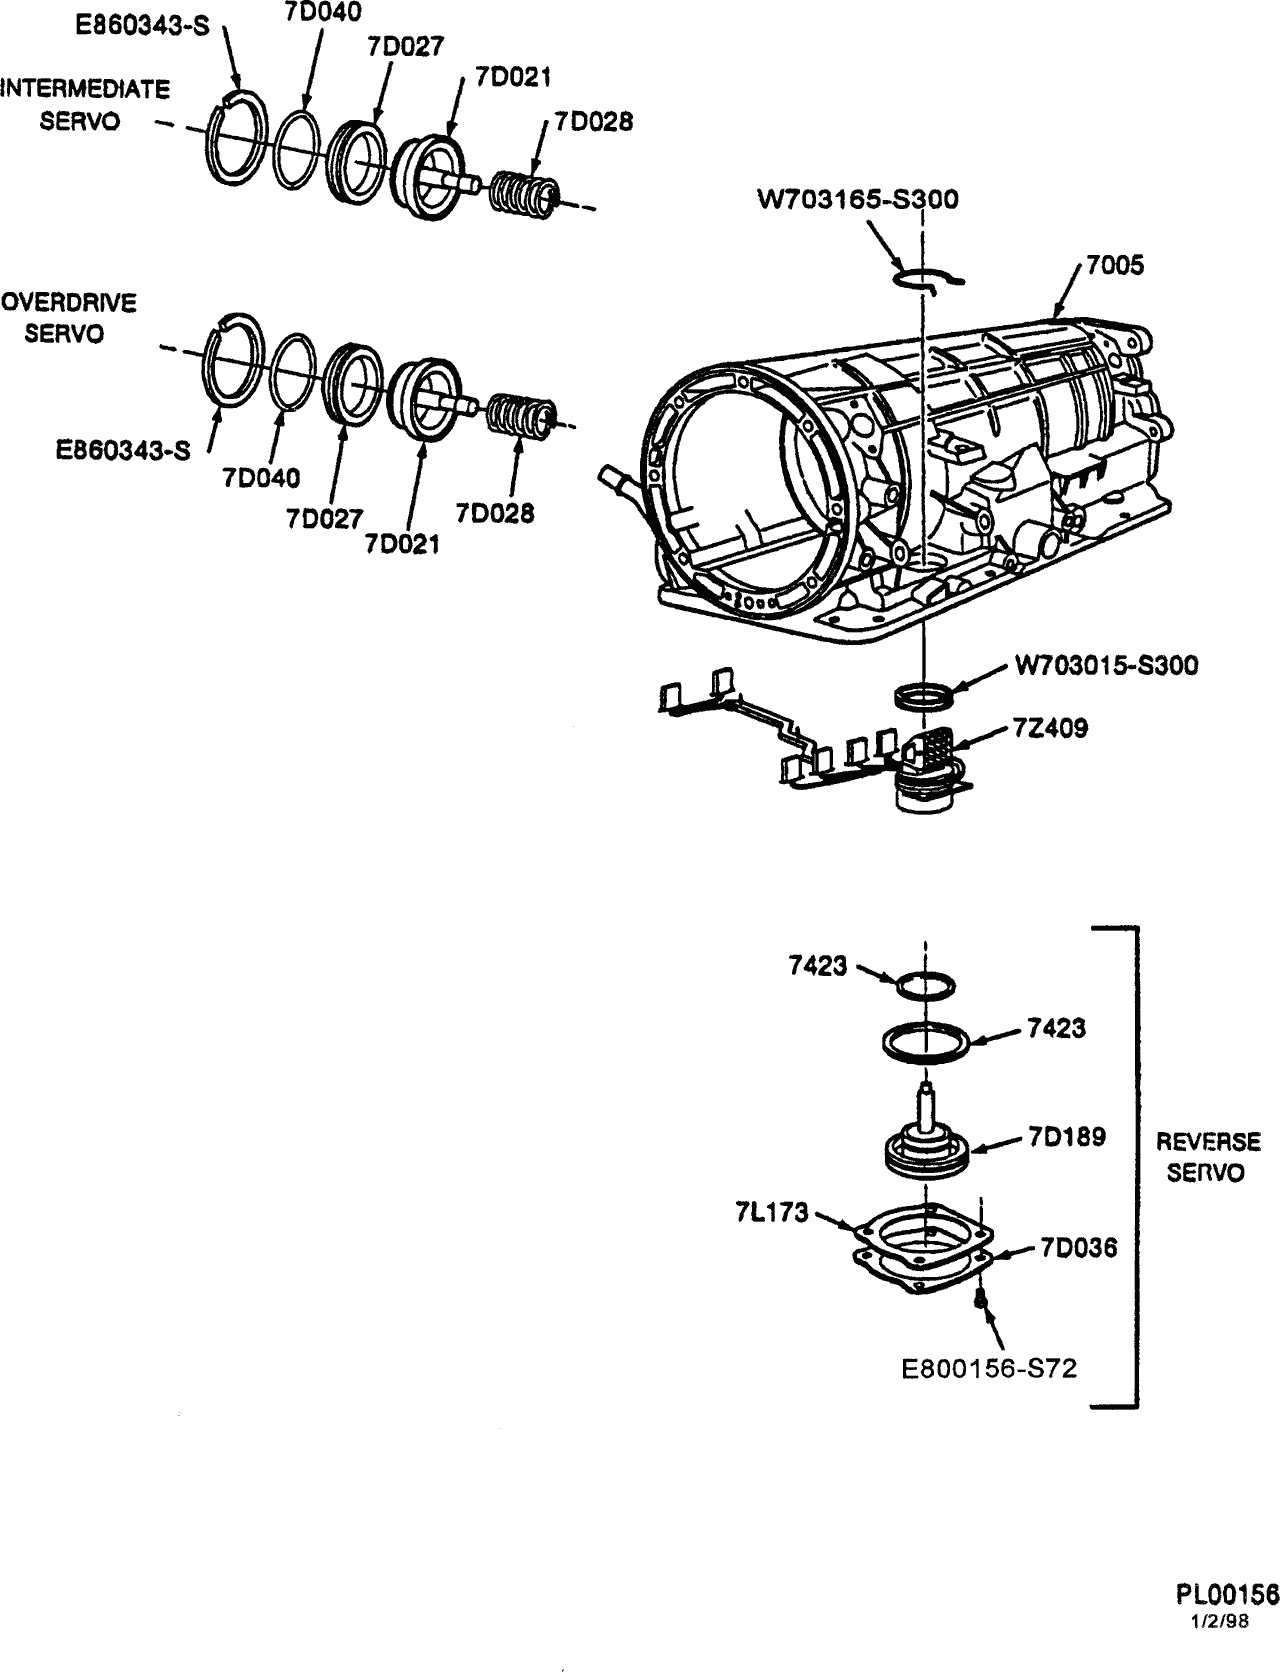 Trans leak / Exploded view of 4R44E automatic trans